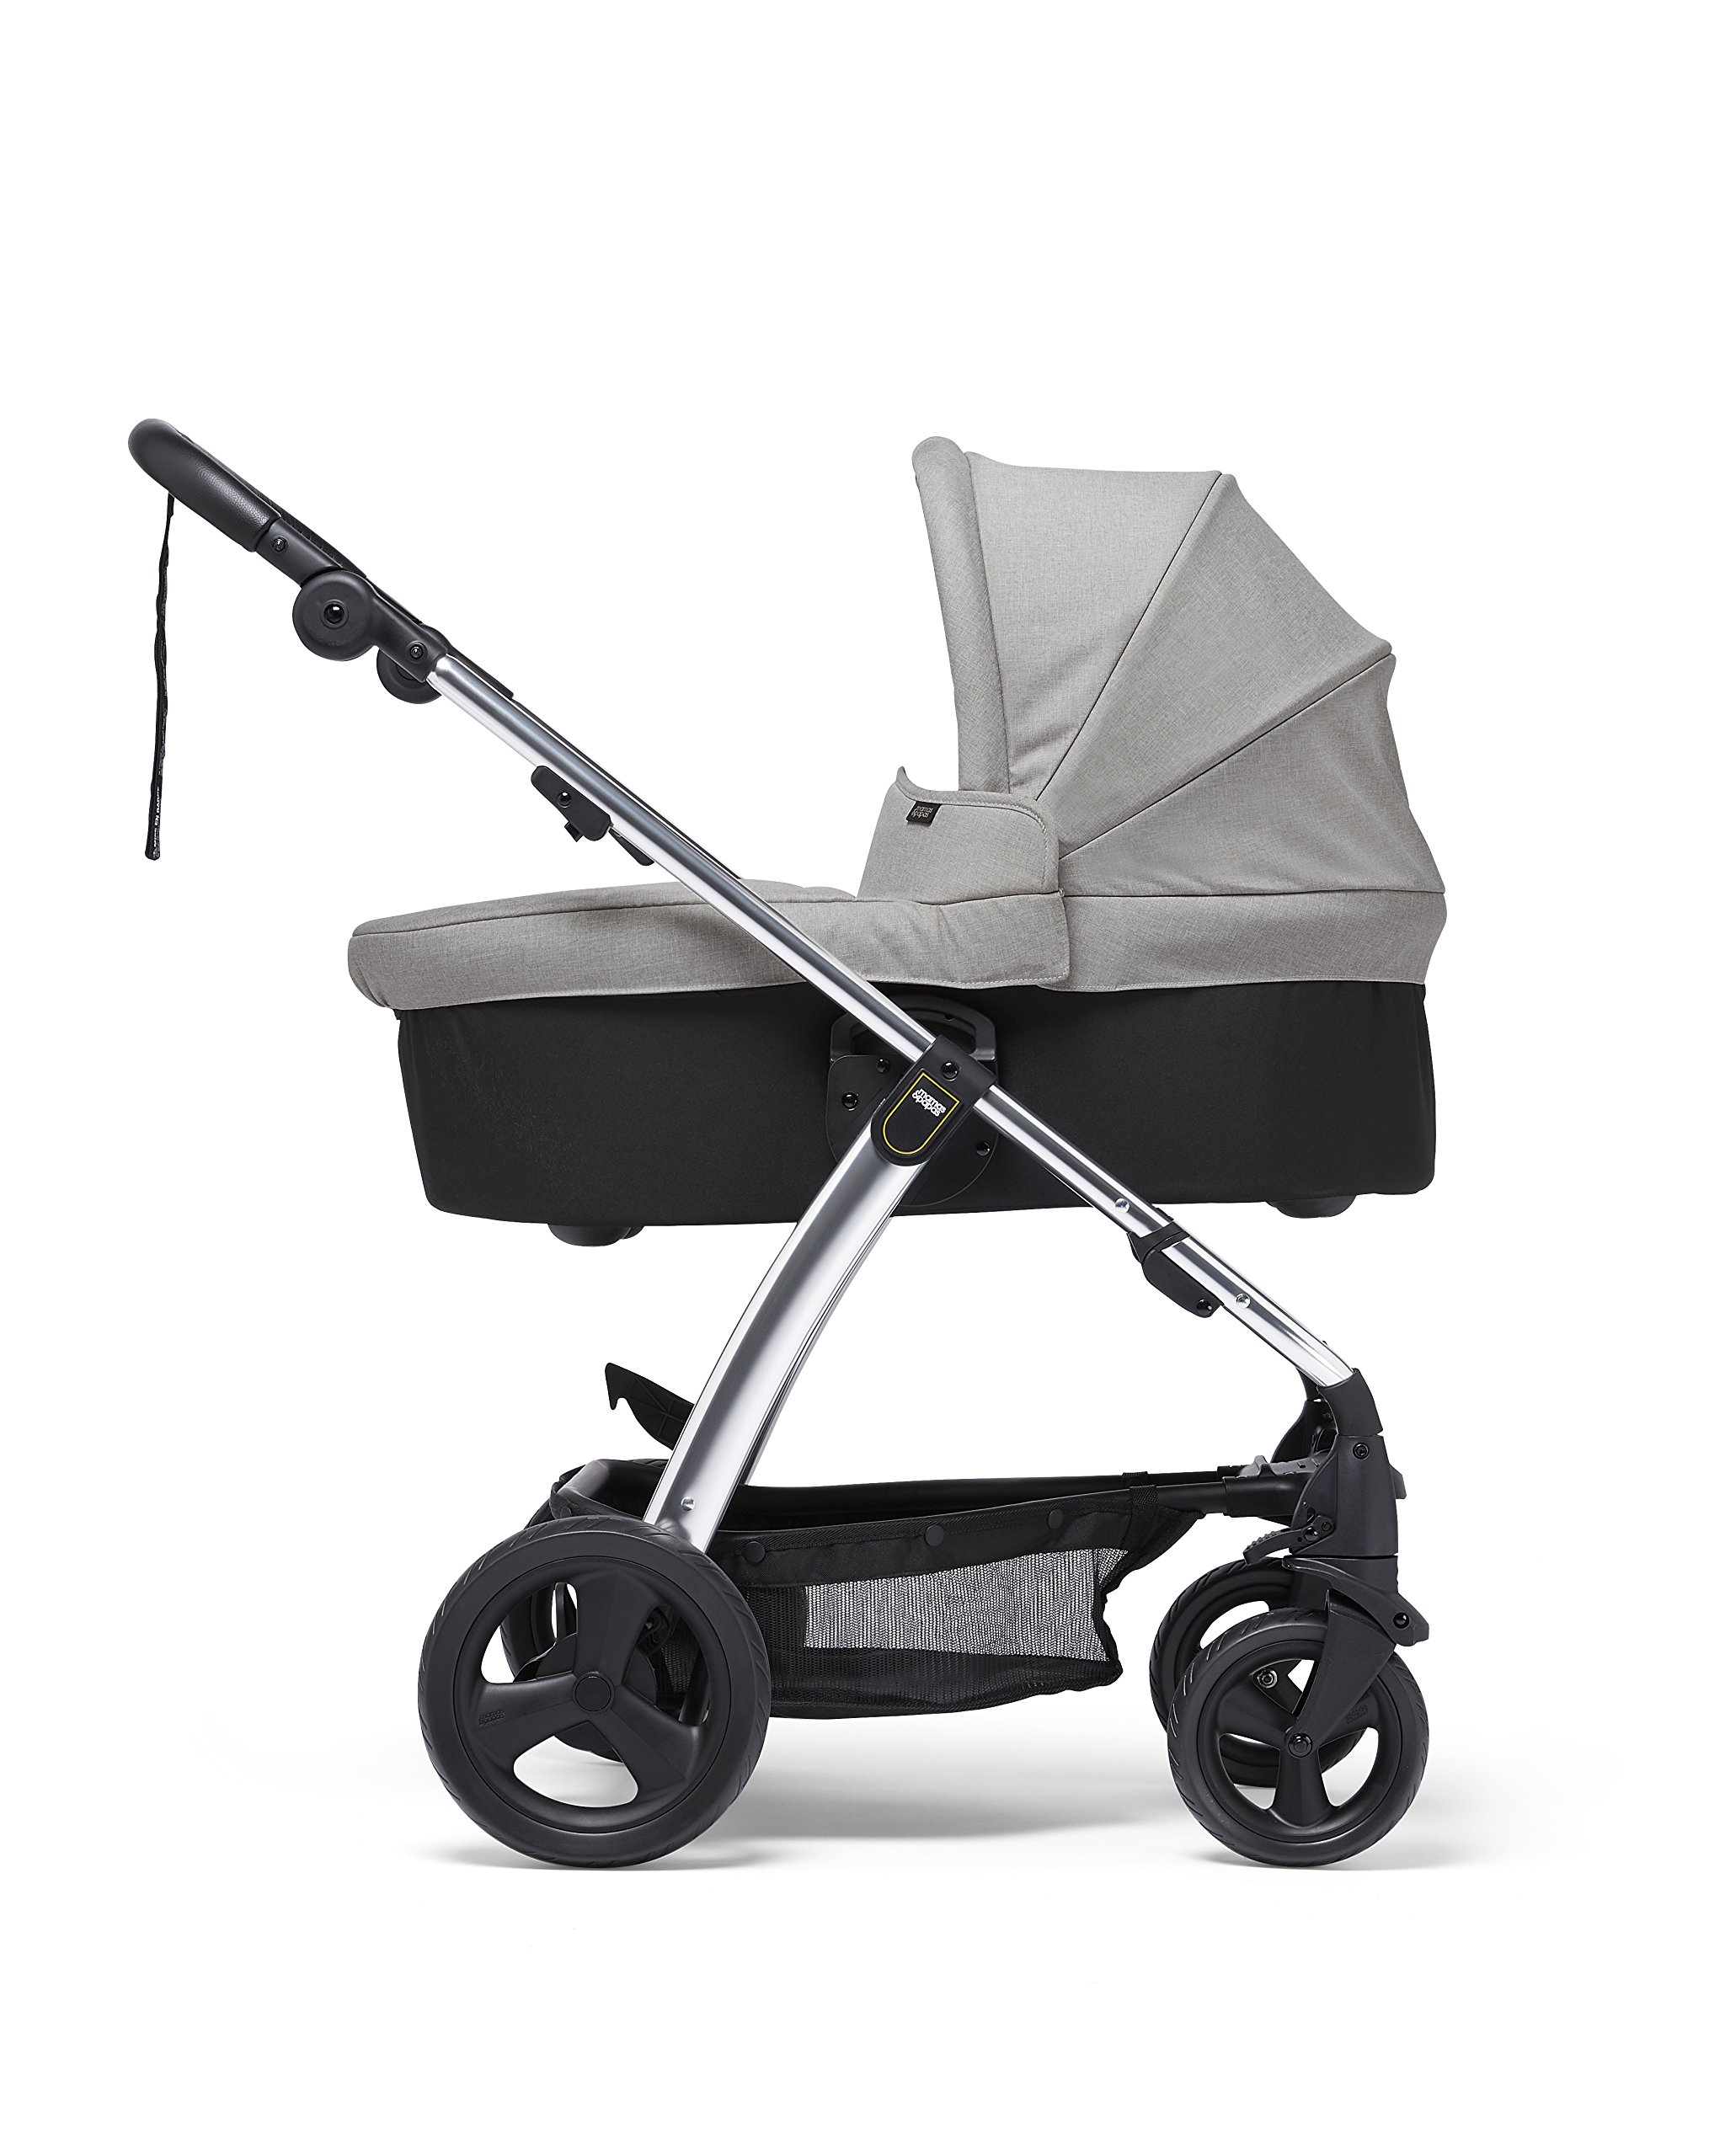 Mamas & Papas Sola² Lightweight Pushchair with Dual Position Seat, Compact Fold & Dual Suspension Wheels - Light Grey Mamas & Papas Great stearability - front and rear suspension wheels ensure a smooth ride for baby's travels. The wheels are also lockable for your peace of mind Large canopy - the large upf 50+ hood protects against harmful rays and a magnetic window lets you check on baby. Attach the included rain cover for drizzly days Dual position - baby can face you or the world to suit them. Adjust the seat to the lie-flat position for a comfortable space for your little one to sleep 1